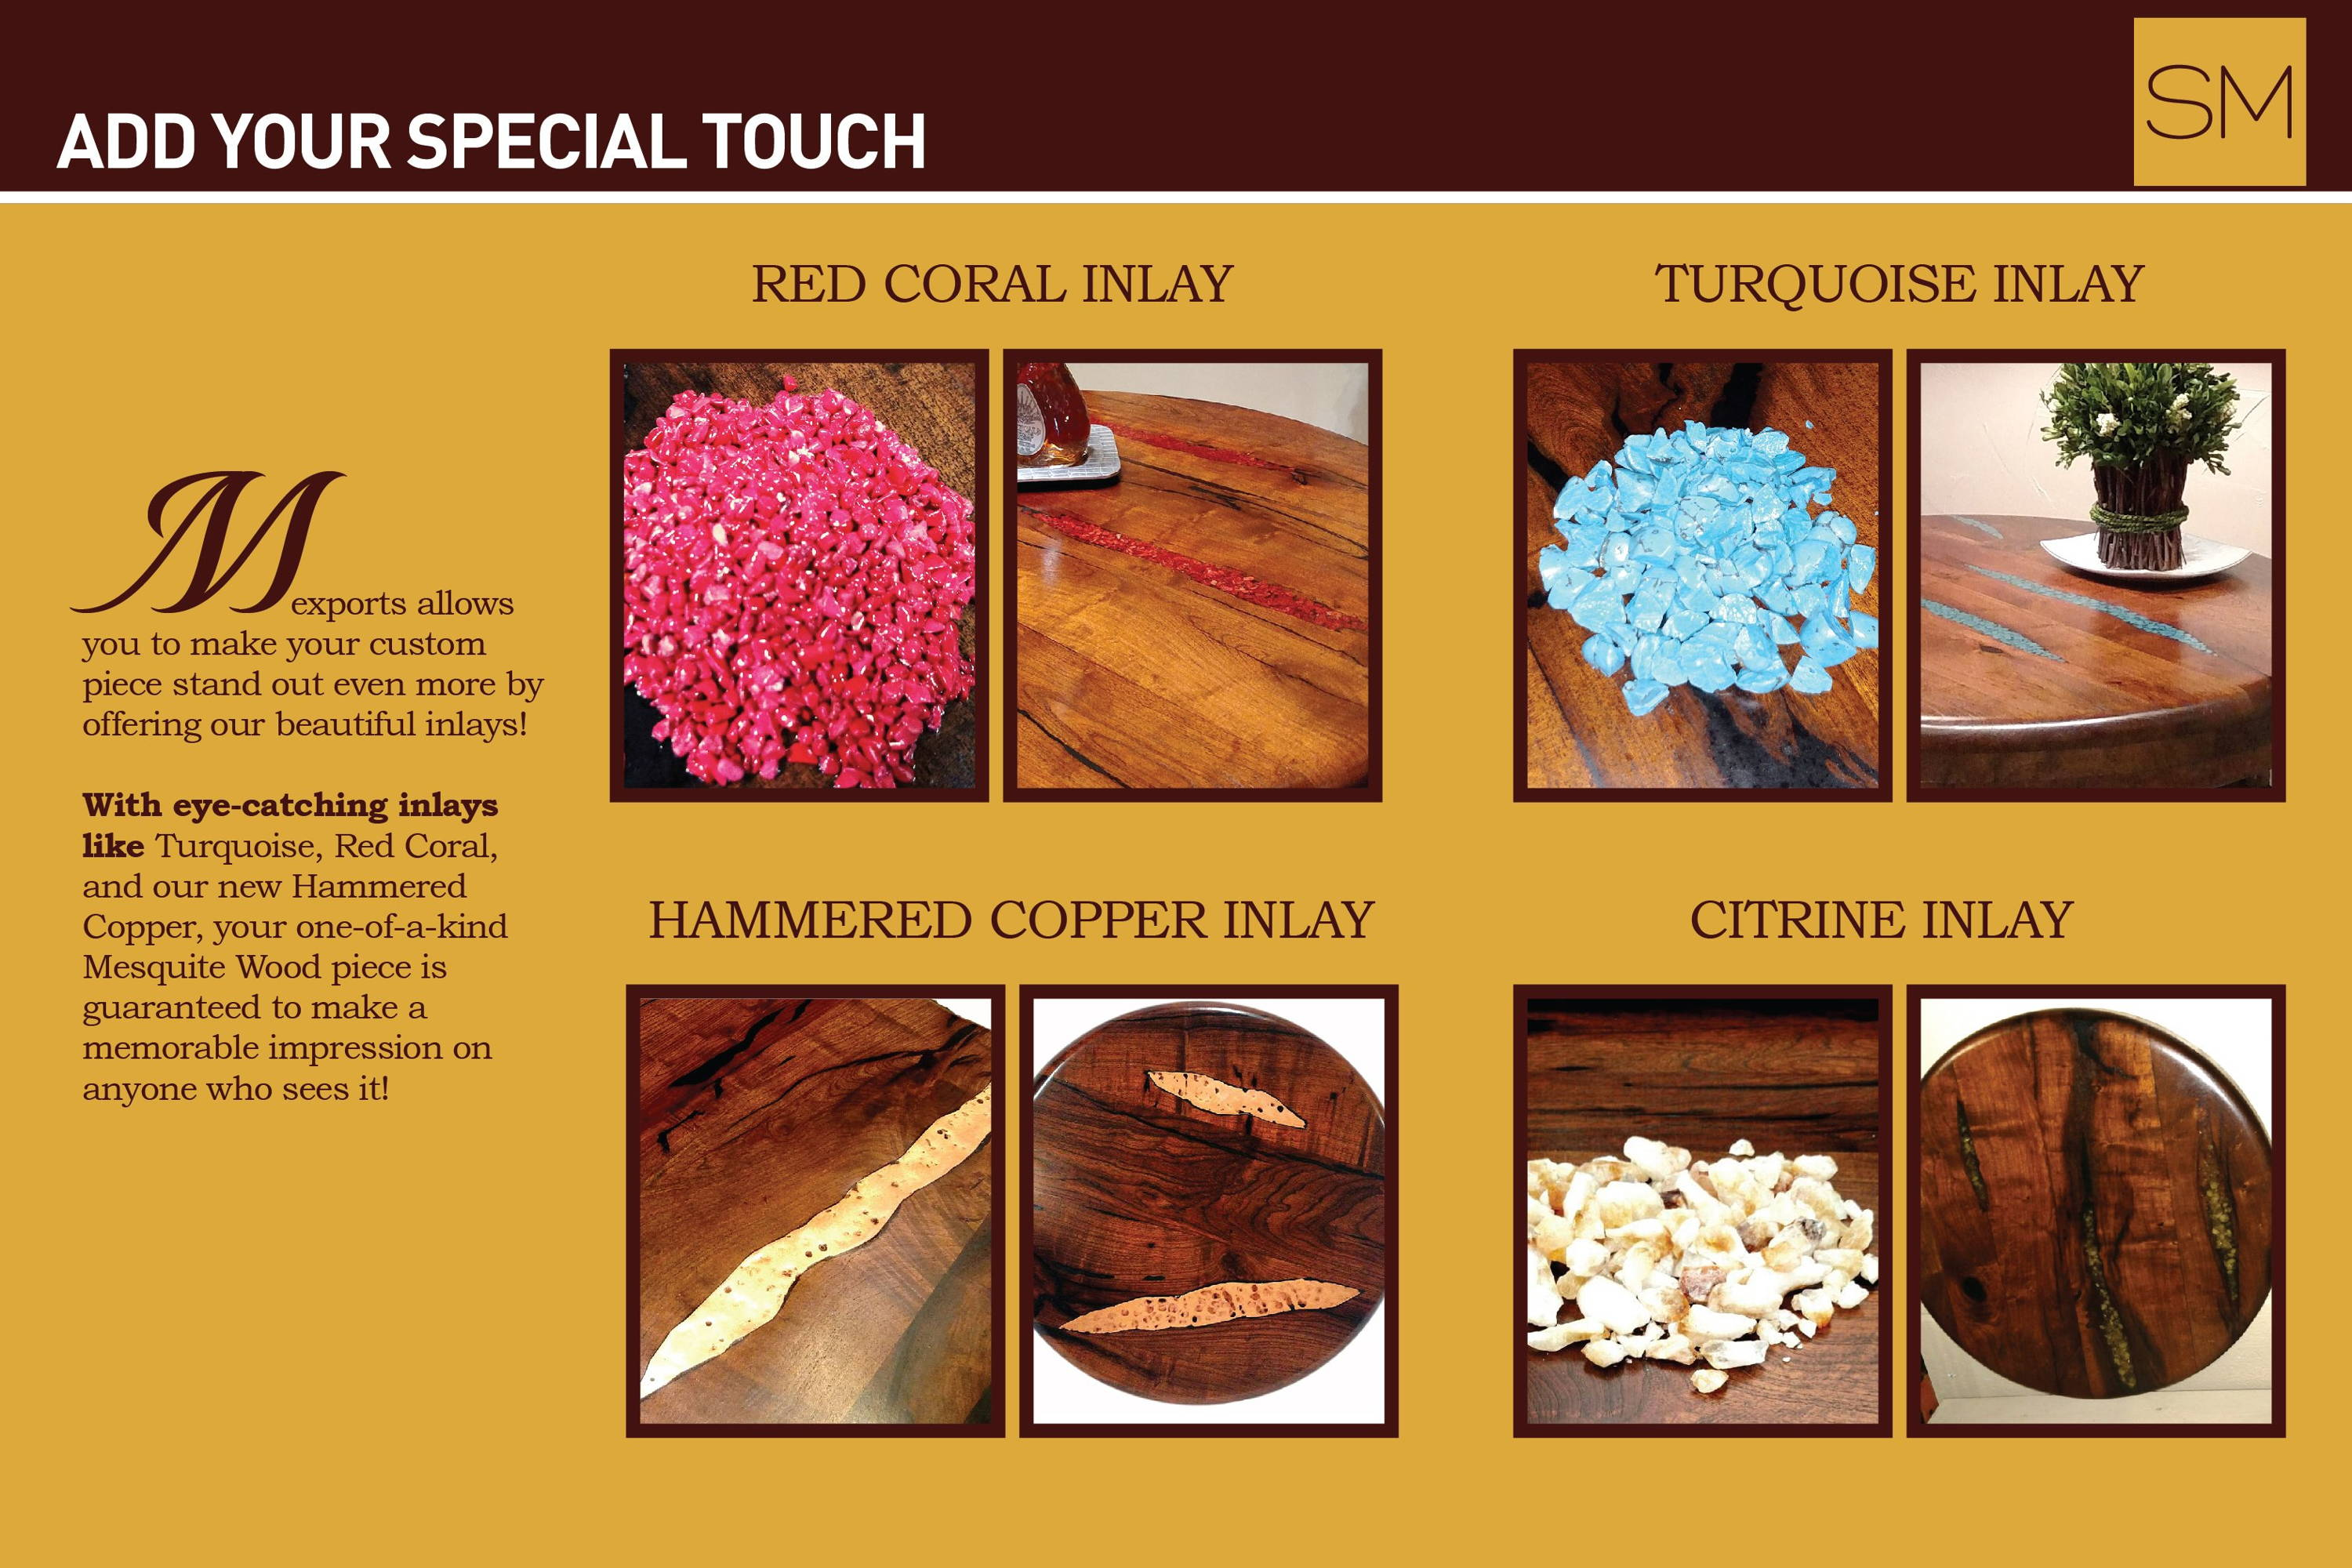 Inlay options including red coral inlay, turquoise inlay, hammered copper inlay, citrine inlay.